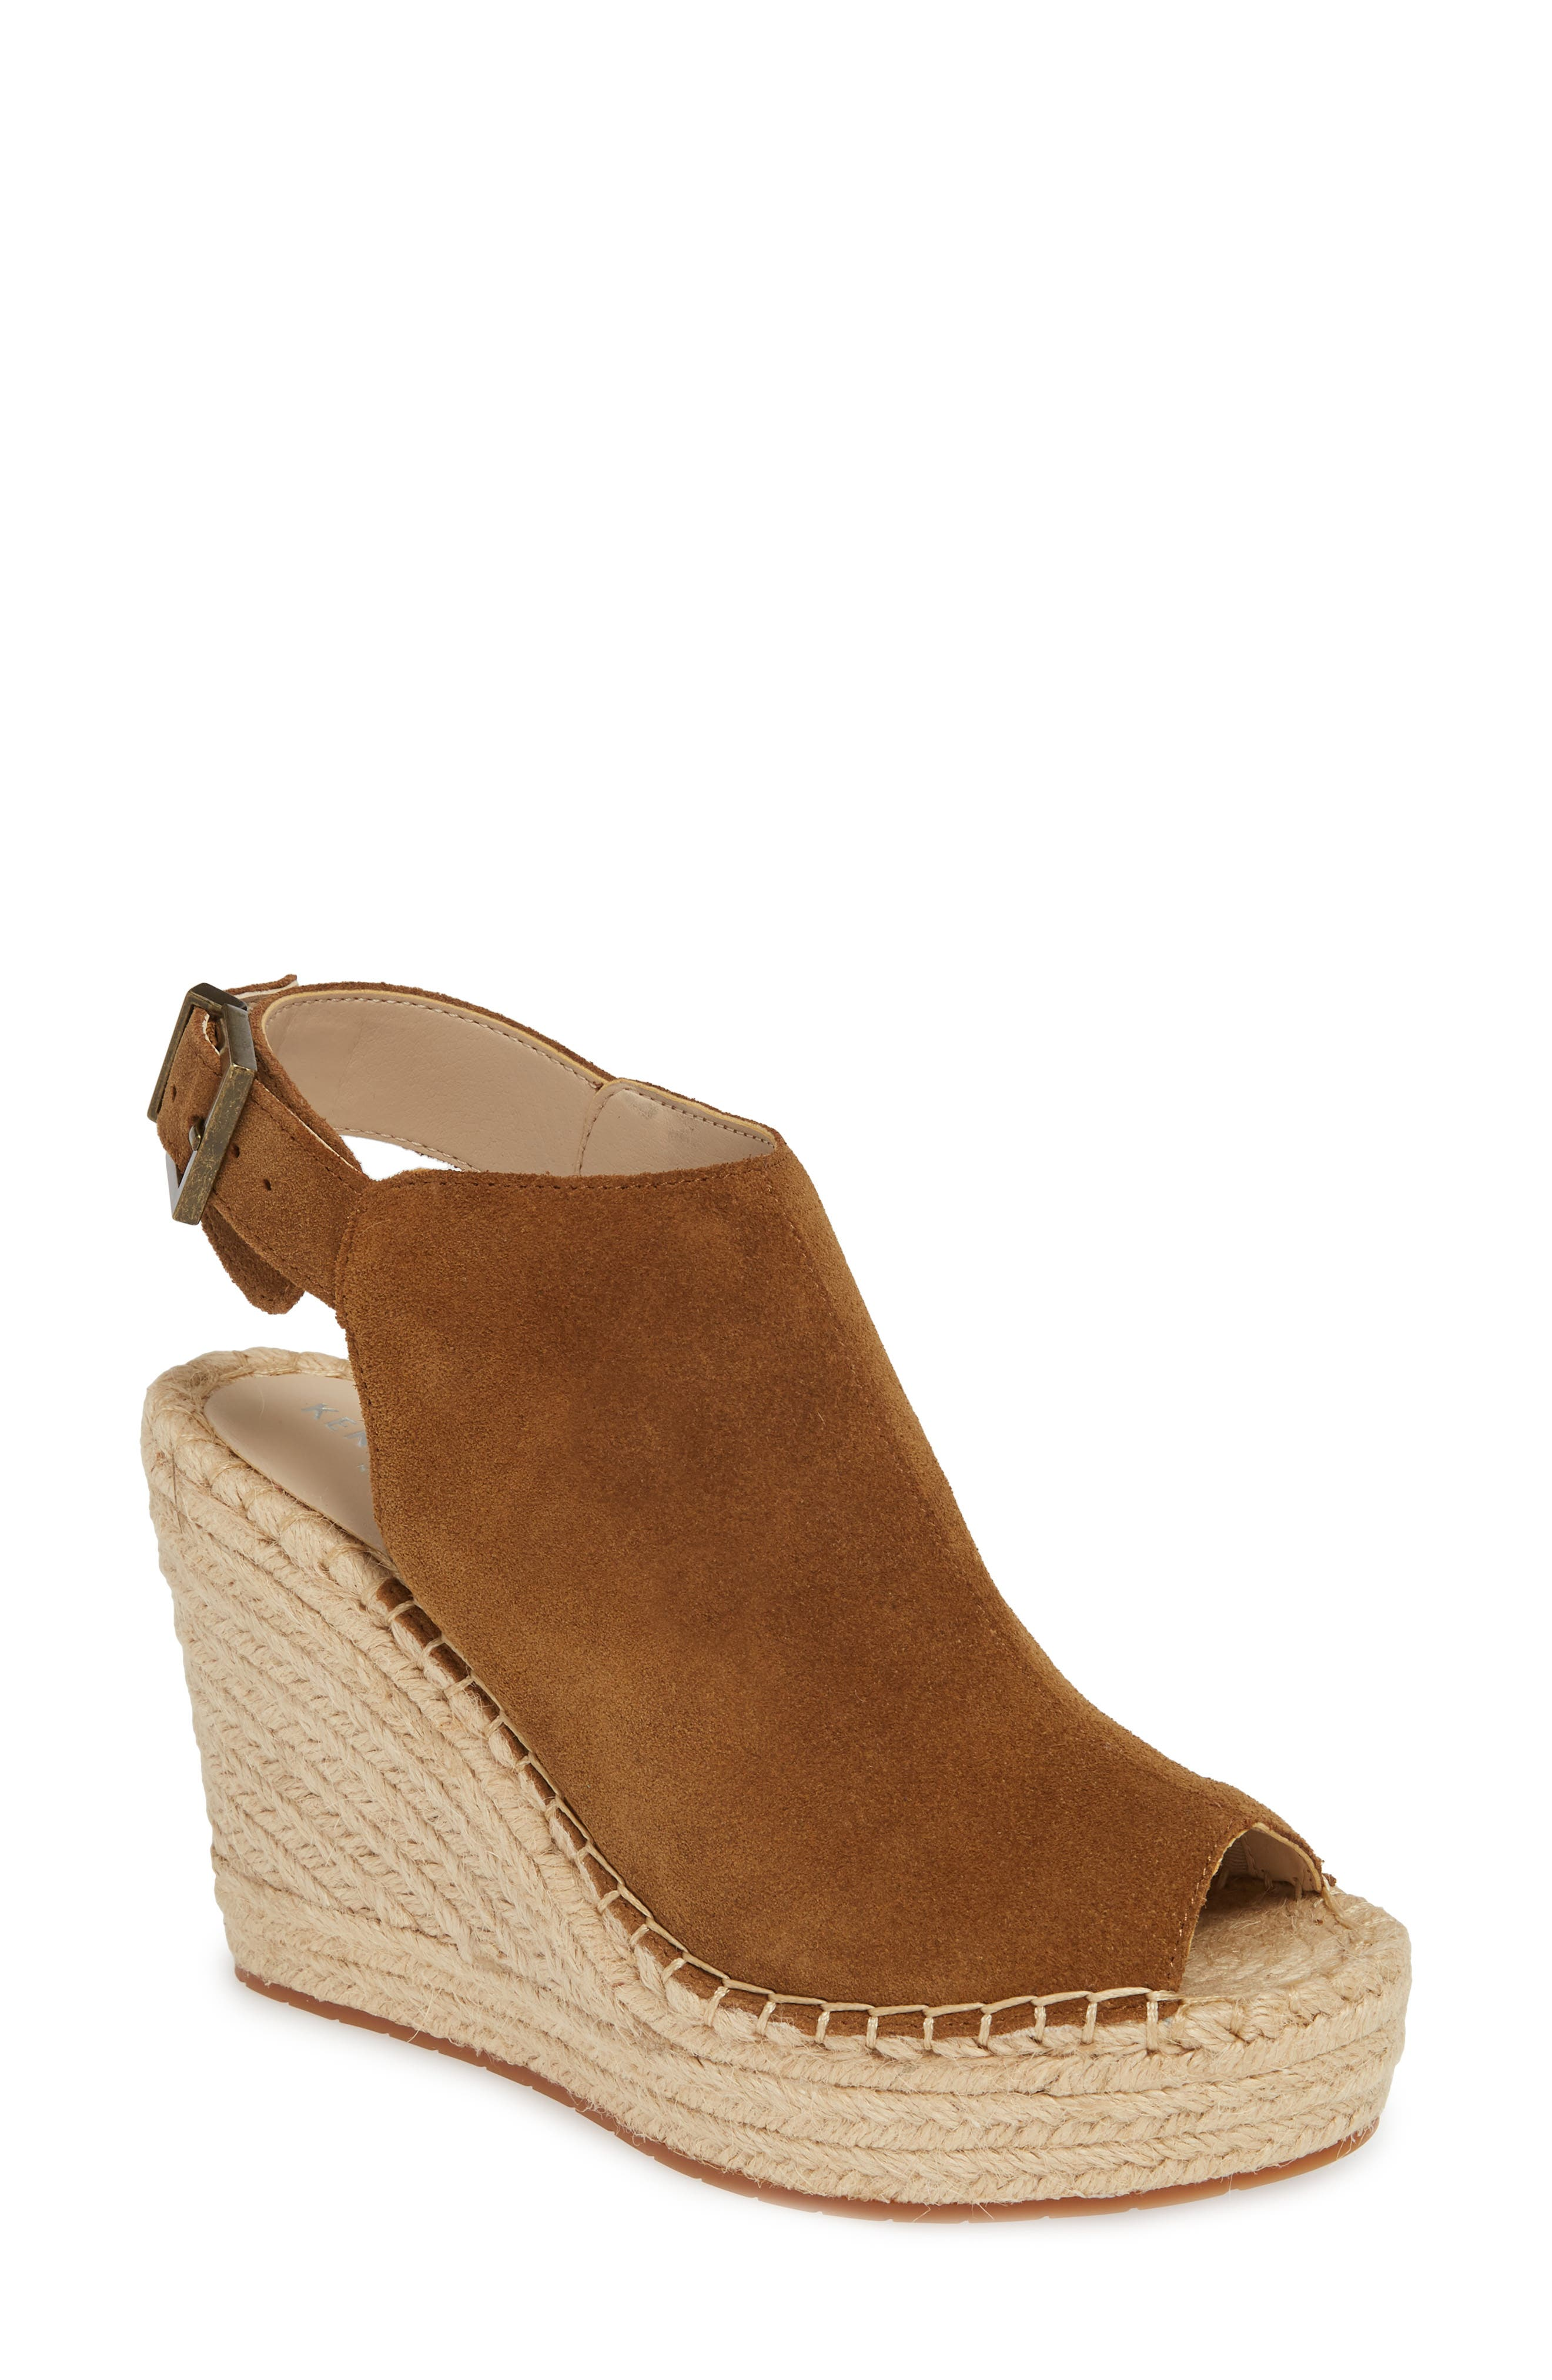 KENNETH COLE NEW YORK 'Olivia' Espadrille Wedge Sandal, Main, color, RUST SUEDE